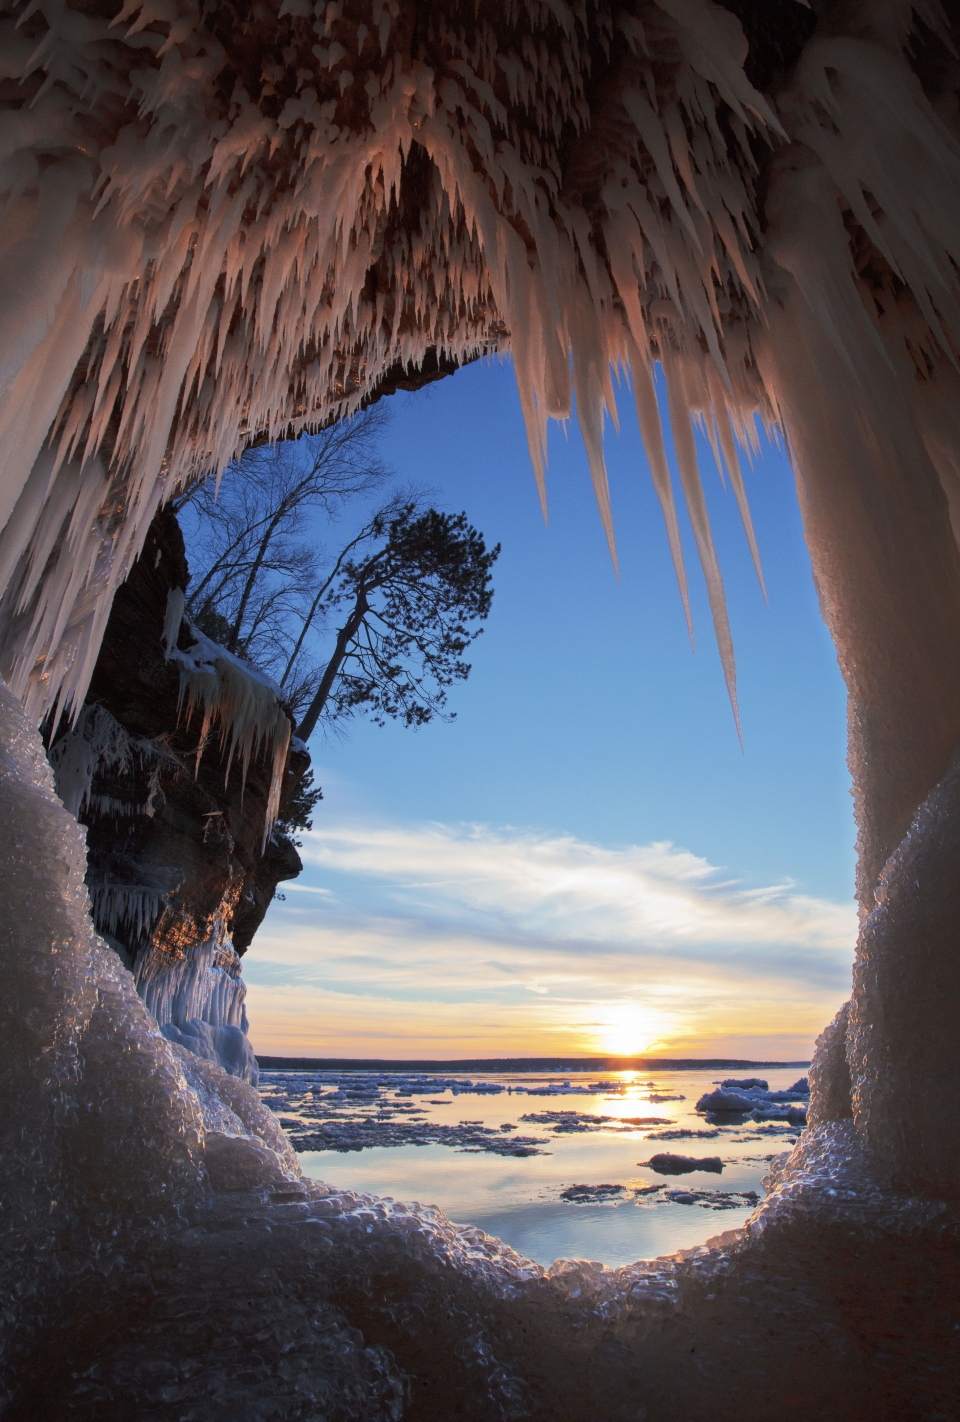 Frozen icicles hang off a cave wall at Apostle Islands